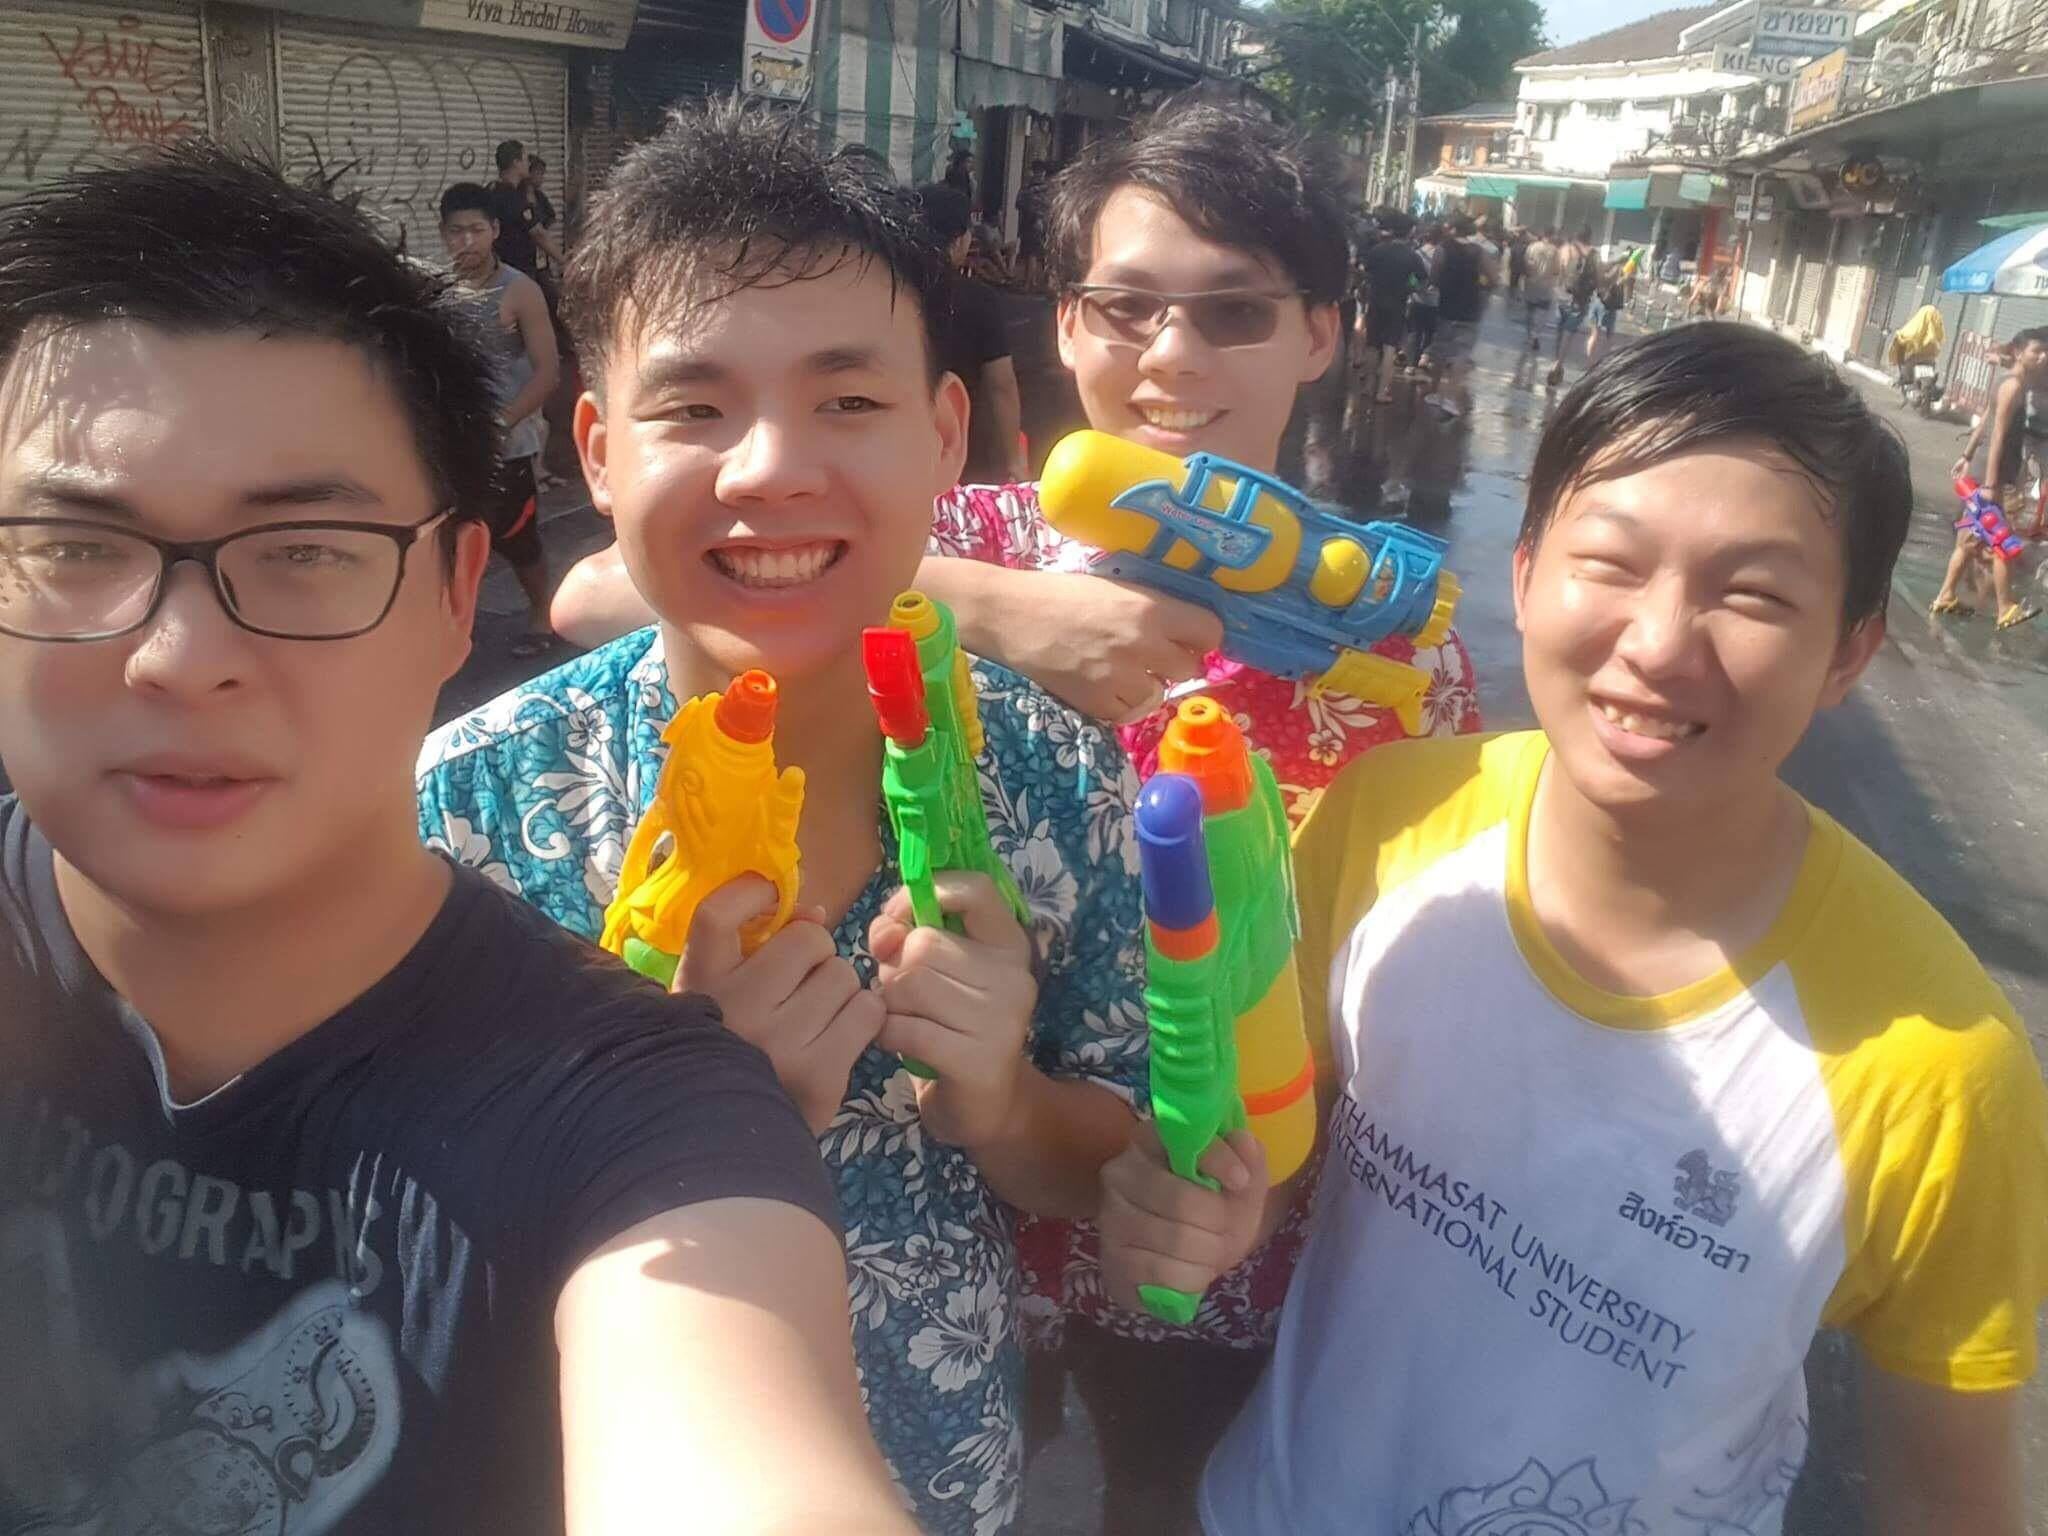 Songkran Festival in Thailand - Dat Le - Spring Exchange Sem of AY 2016-2017